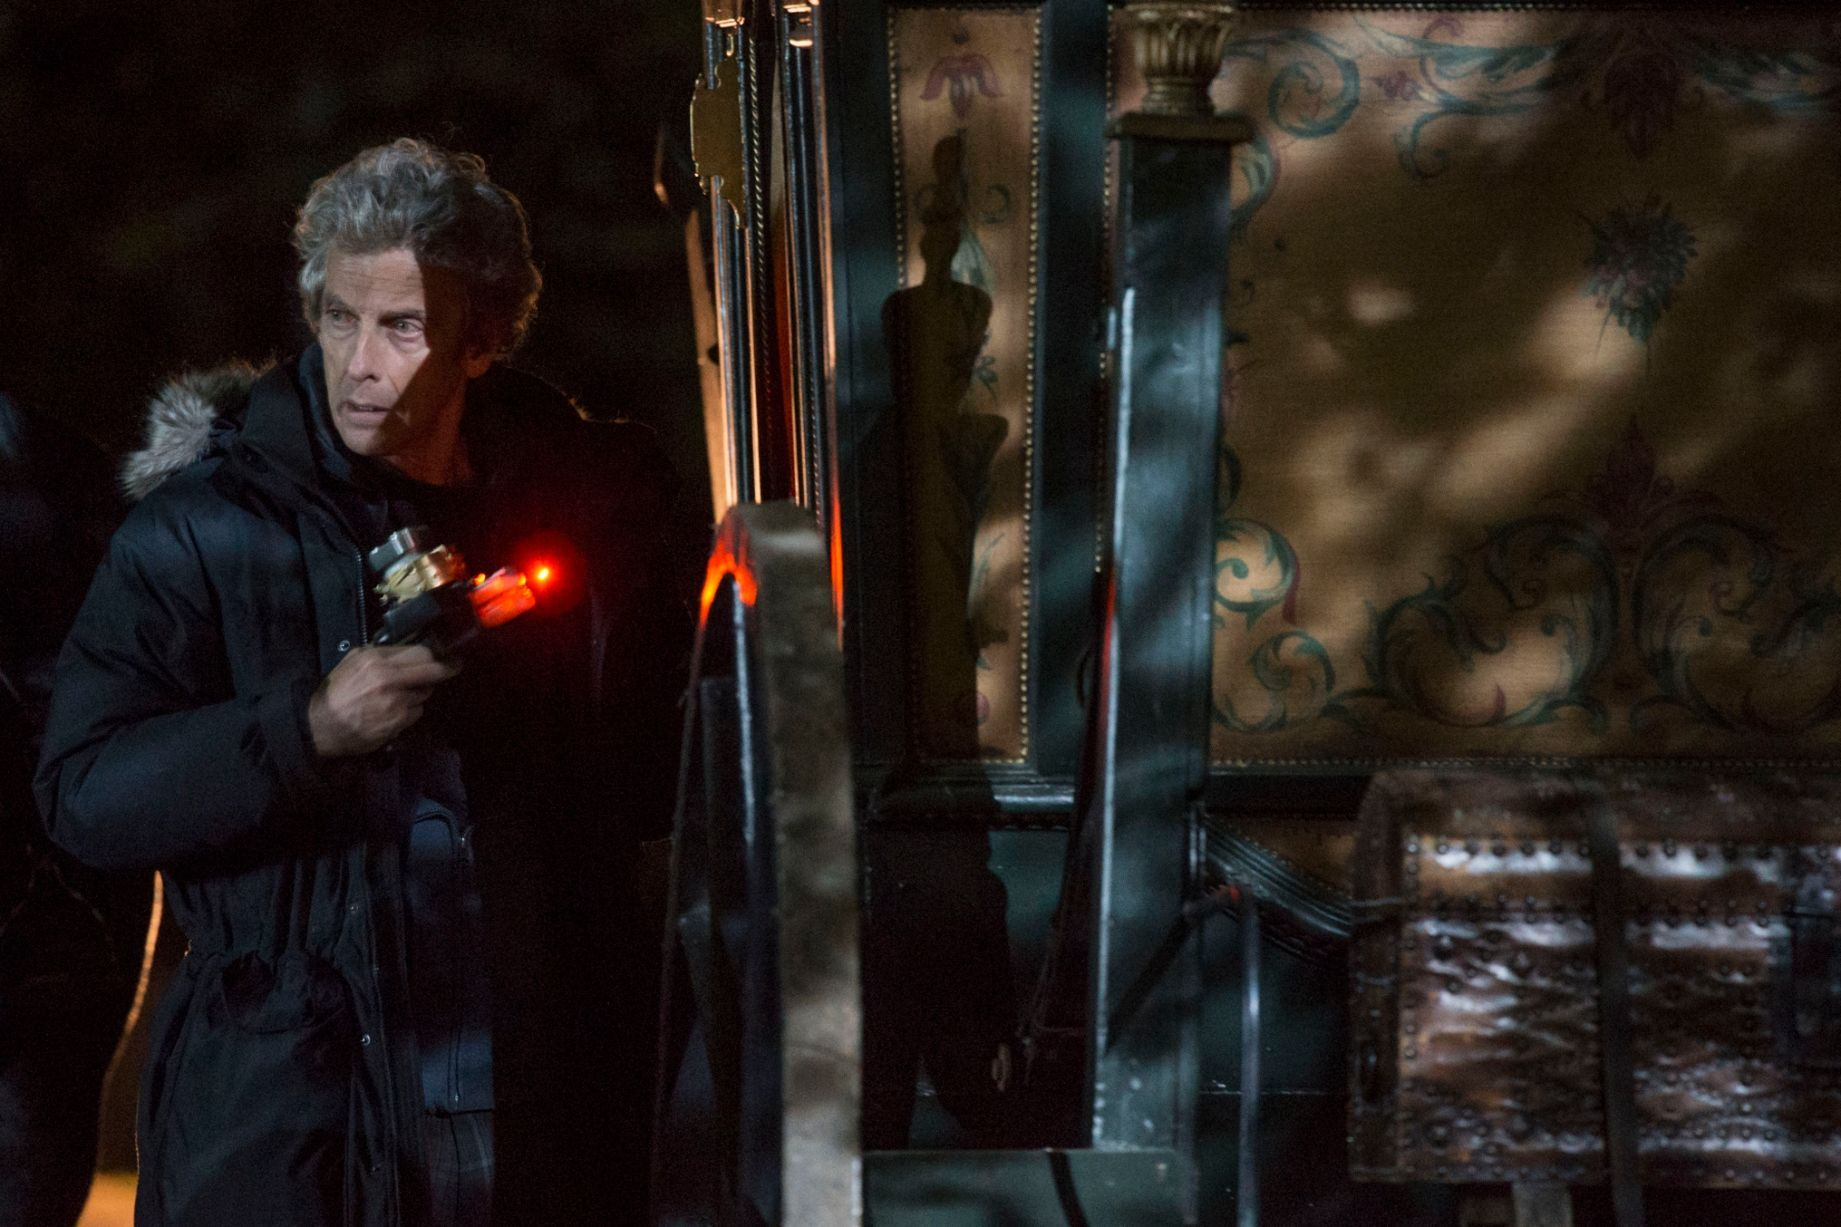 doctor who pics from the show | Doctor Who Doctor Who - Series 9 ...